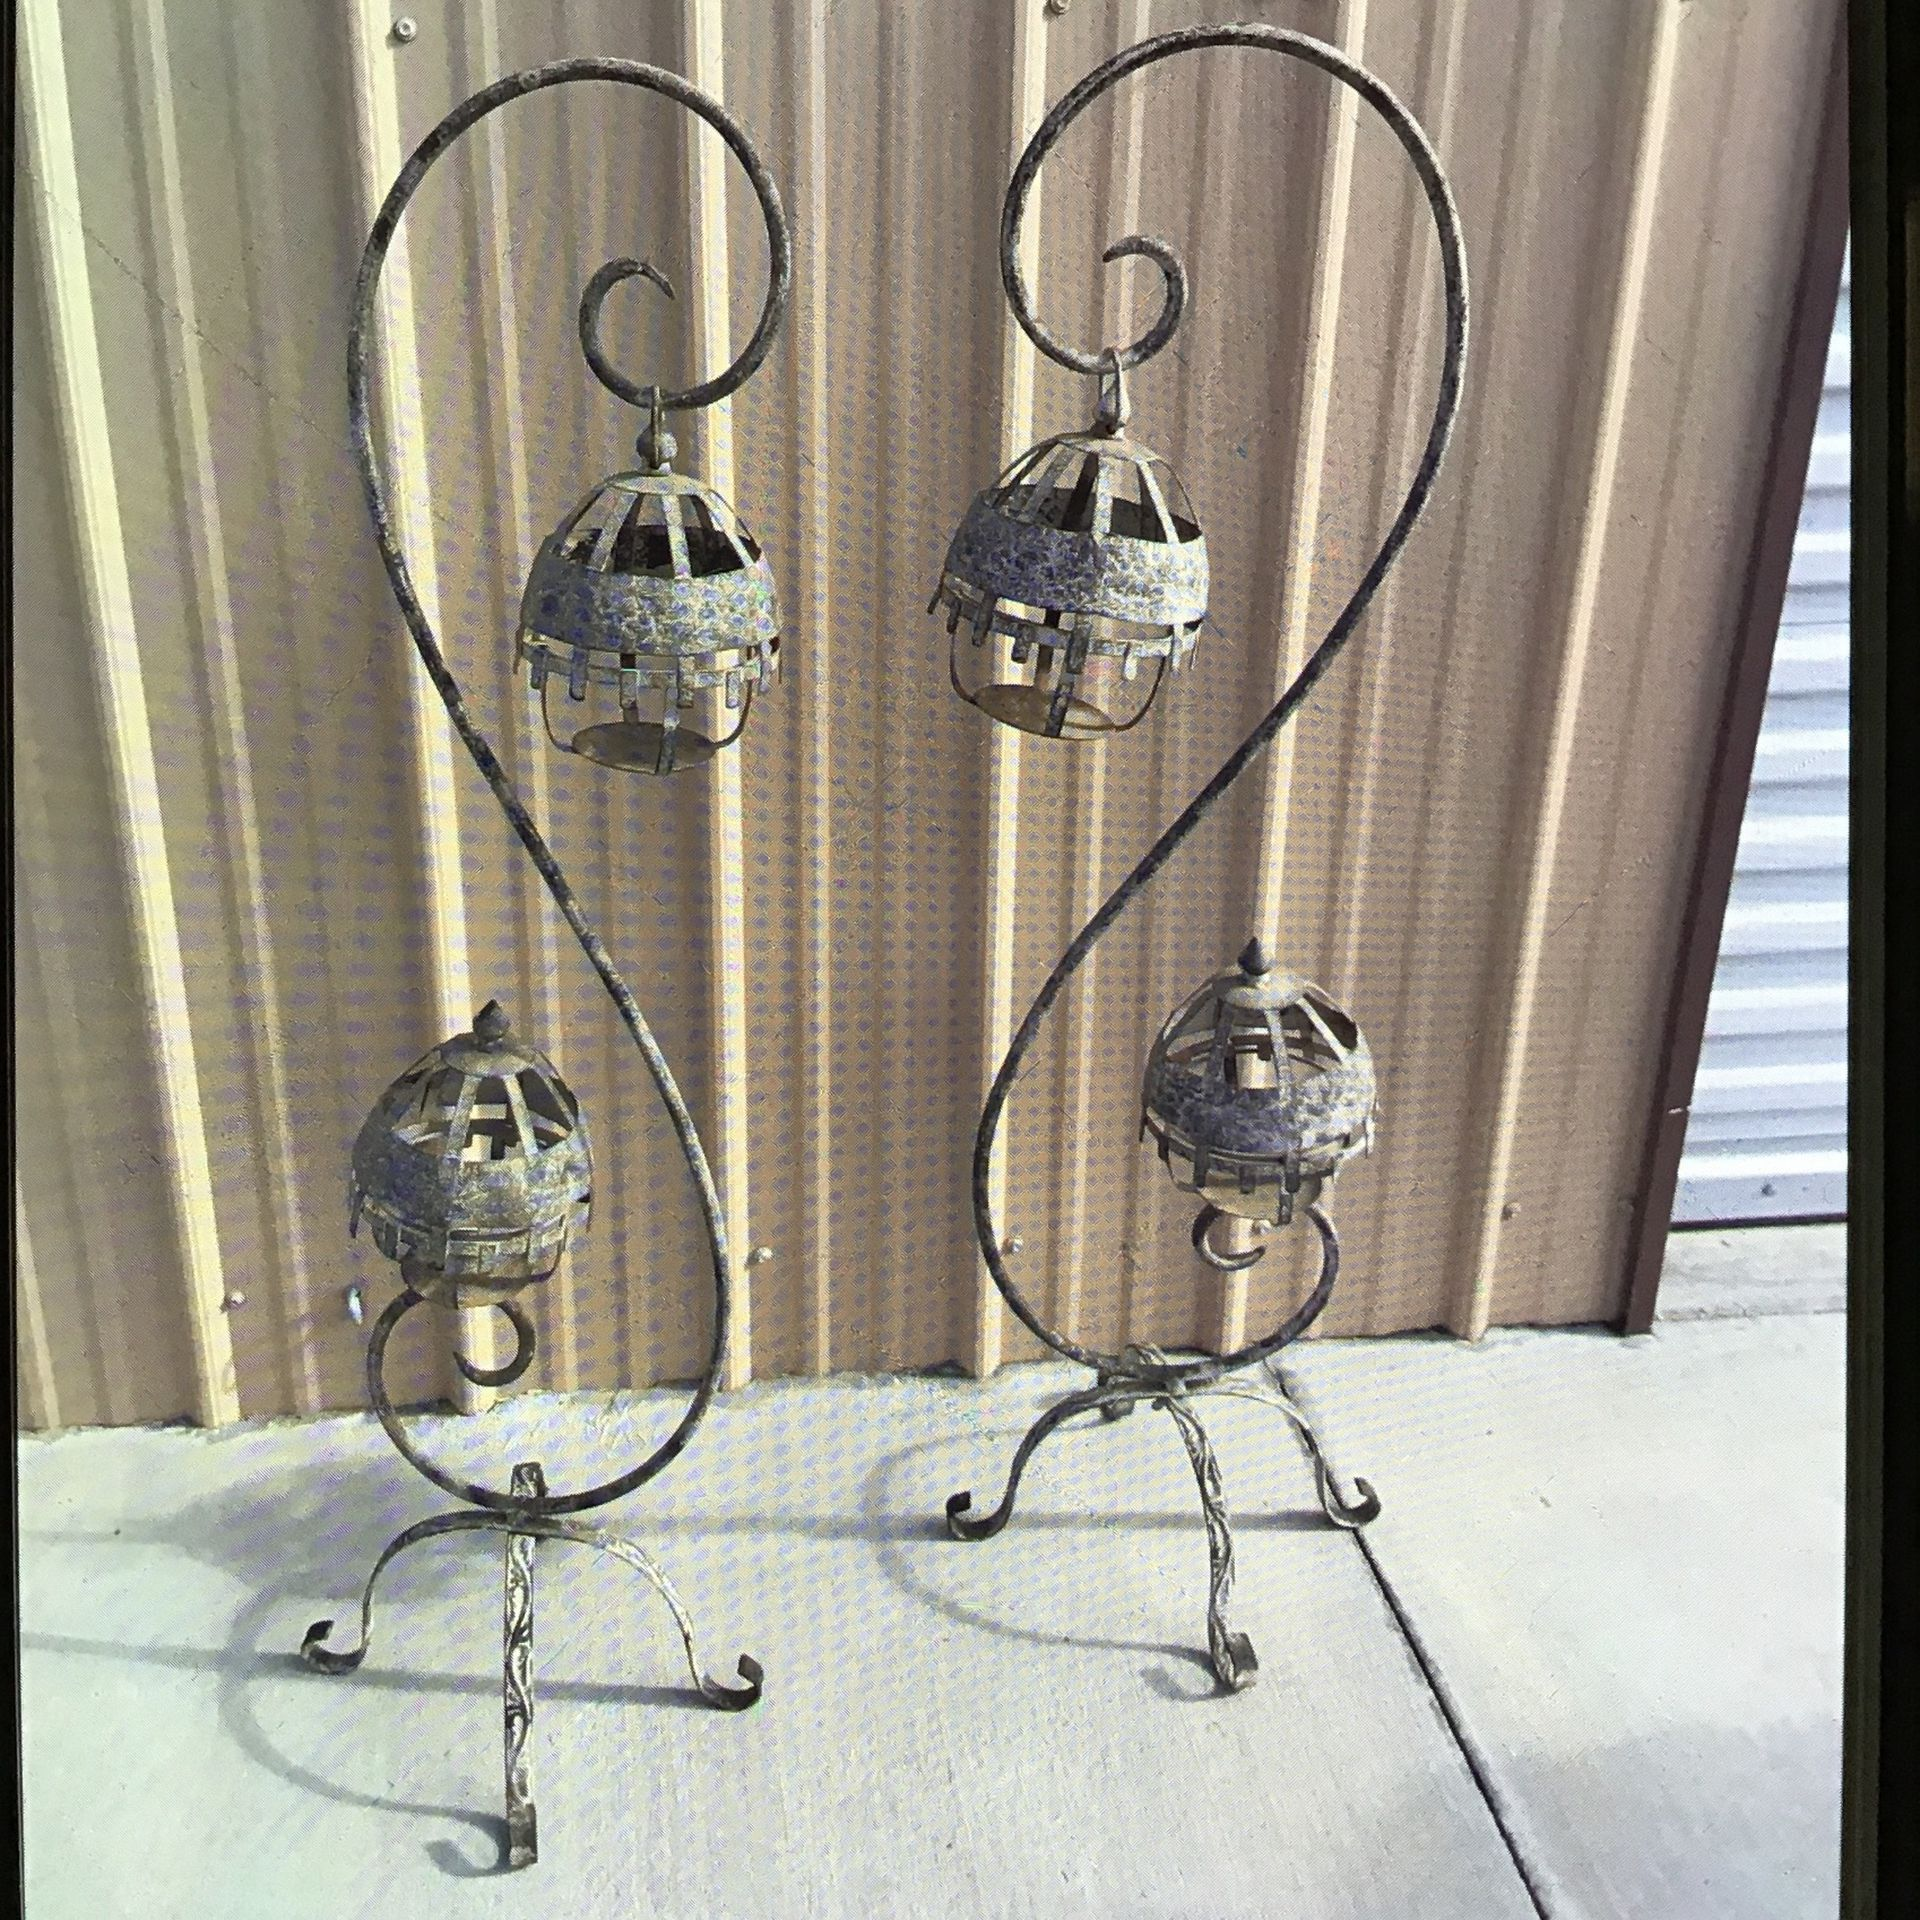 Outdoor Decorative Candle Holders